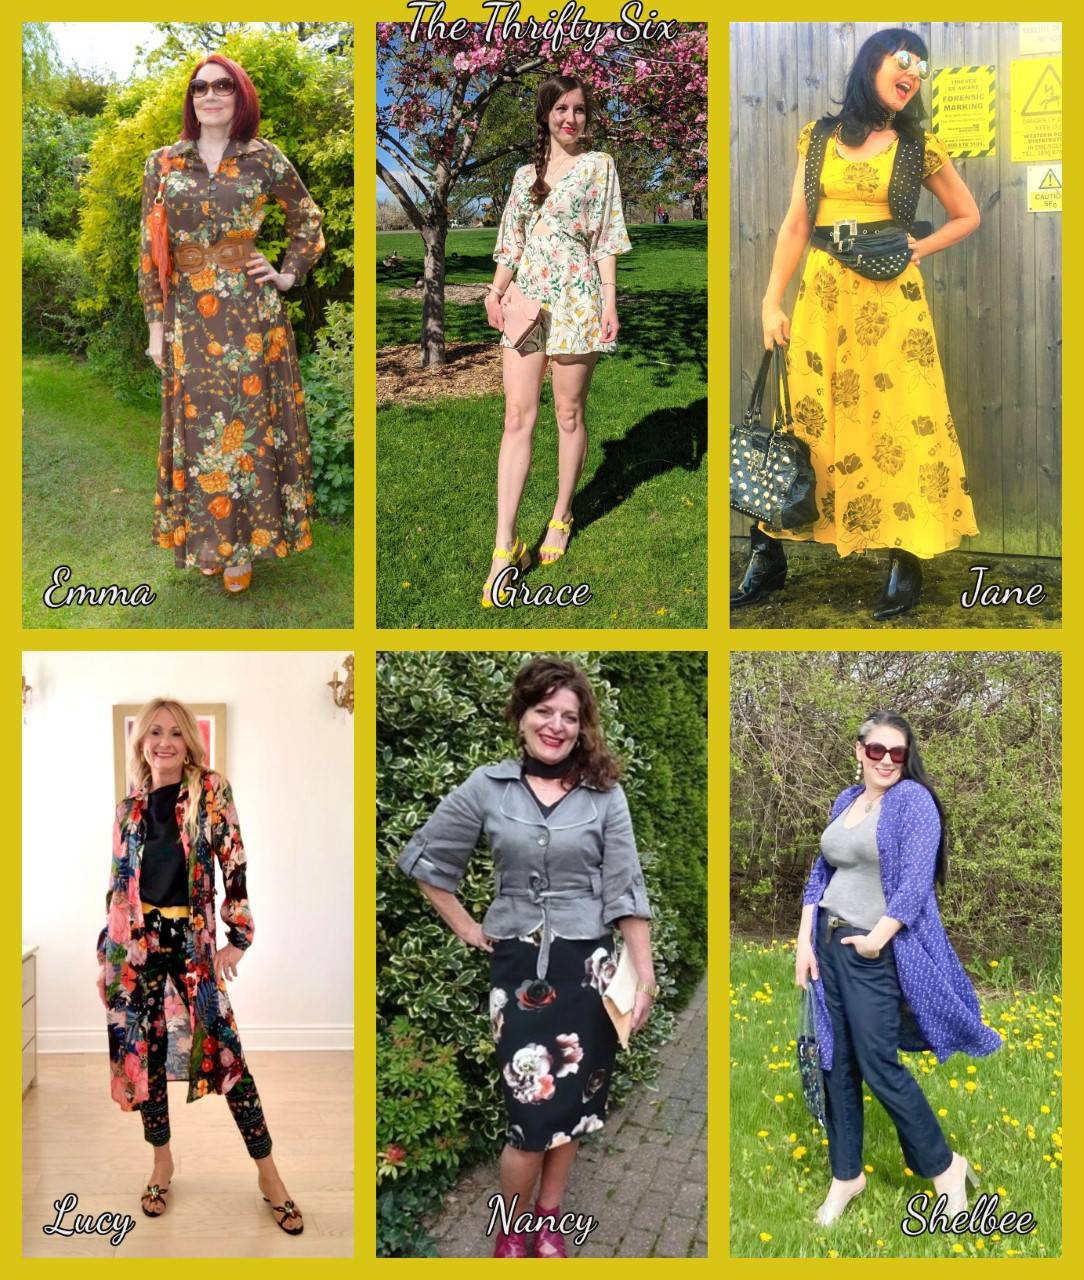 Wearing Pre-loved Floral Prints - May's Thrifty Six collage